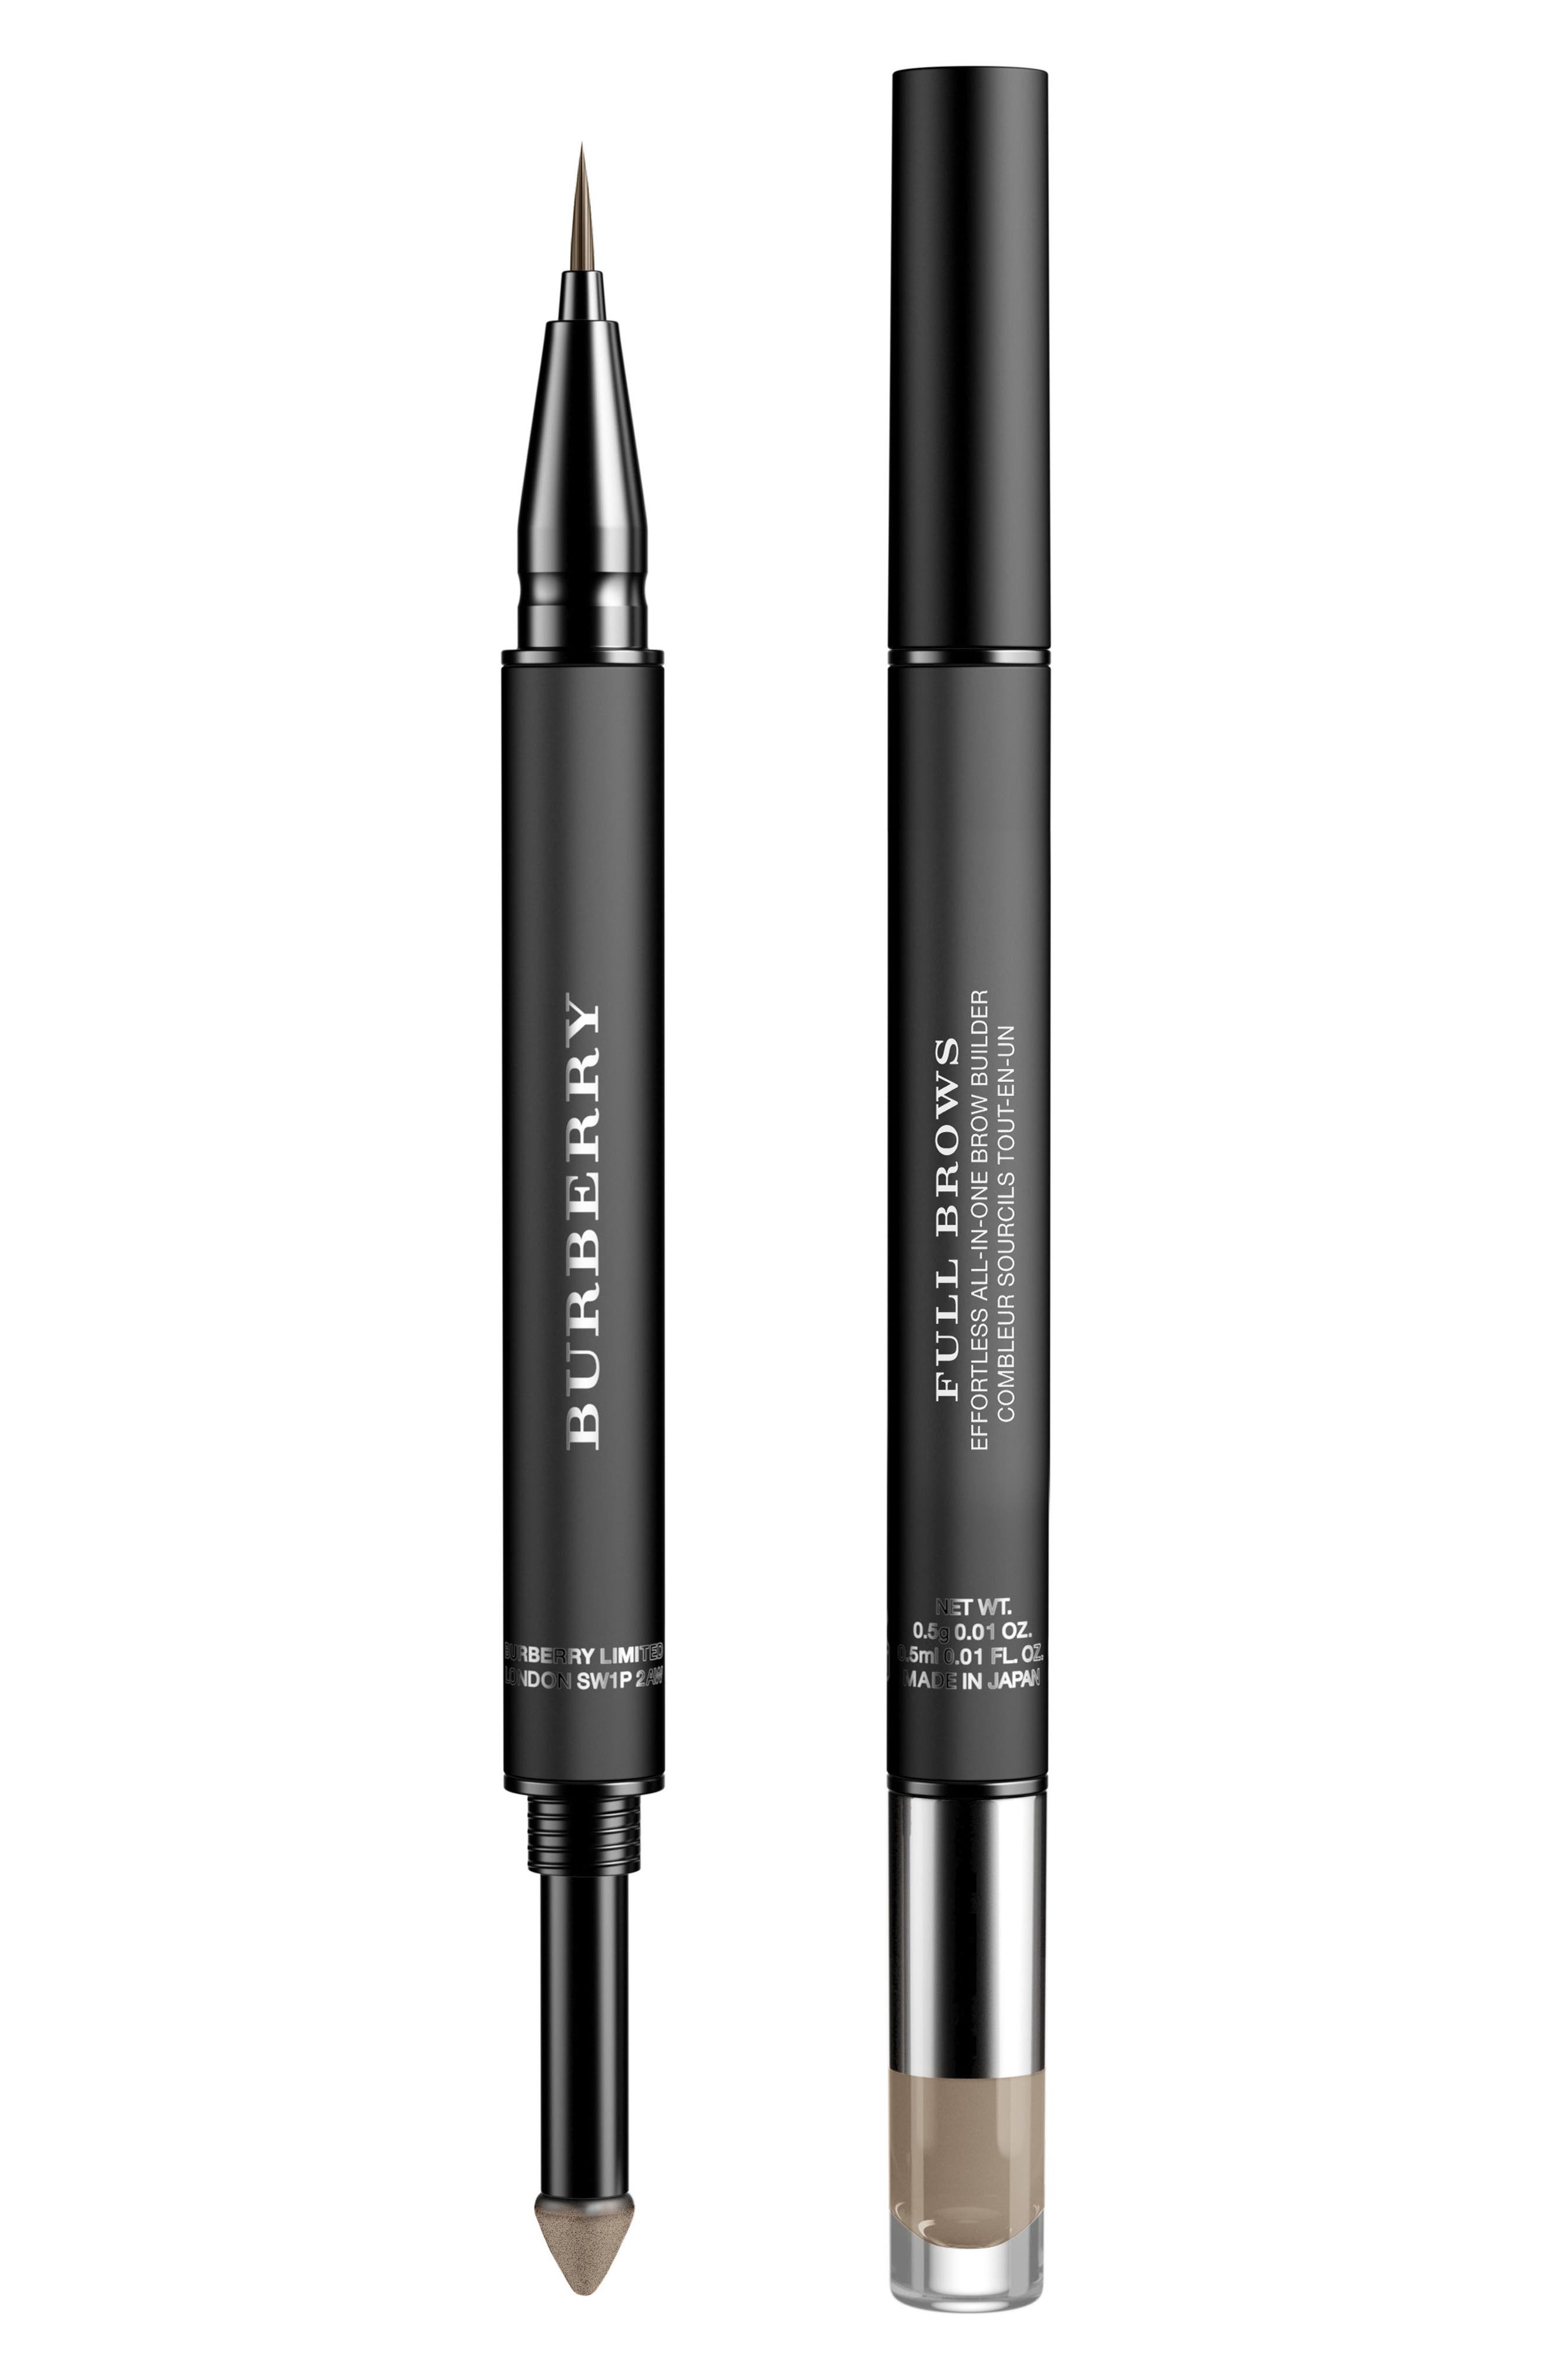 Full Brows Effortless All-in-One Brow Builder,                         Main,                         color, No. 01 Barley